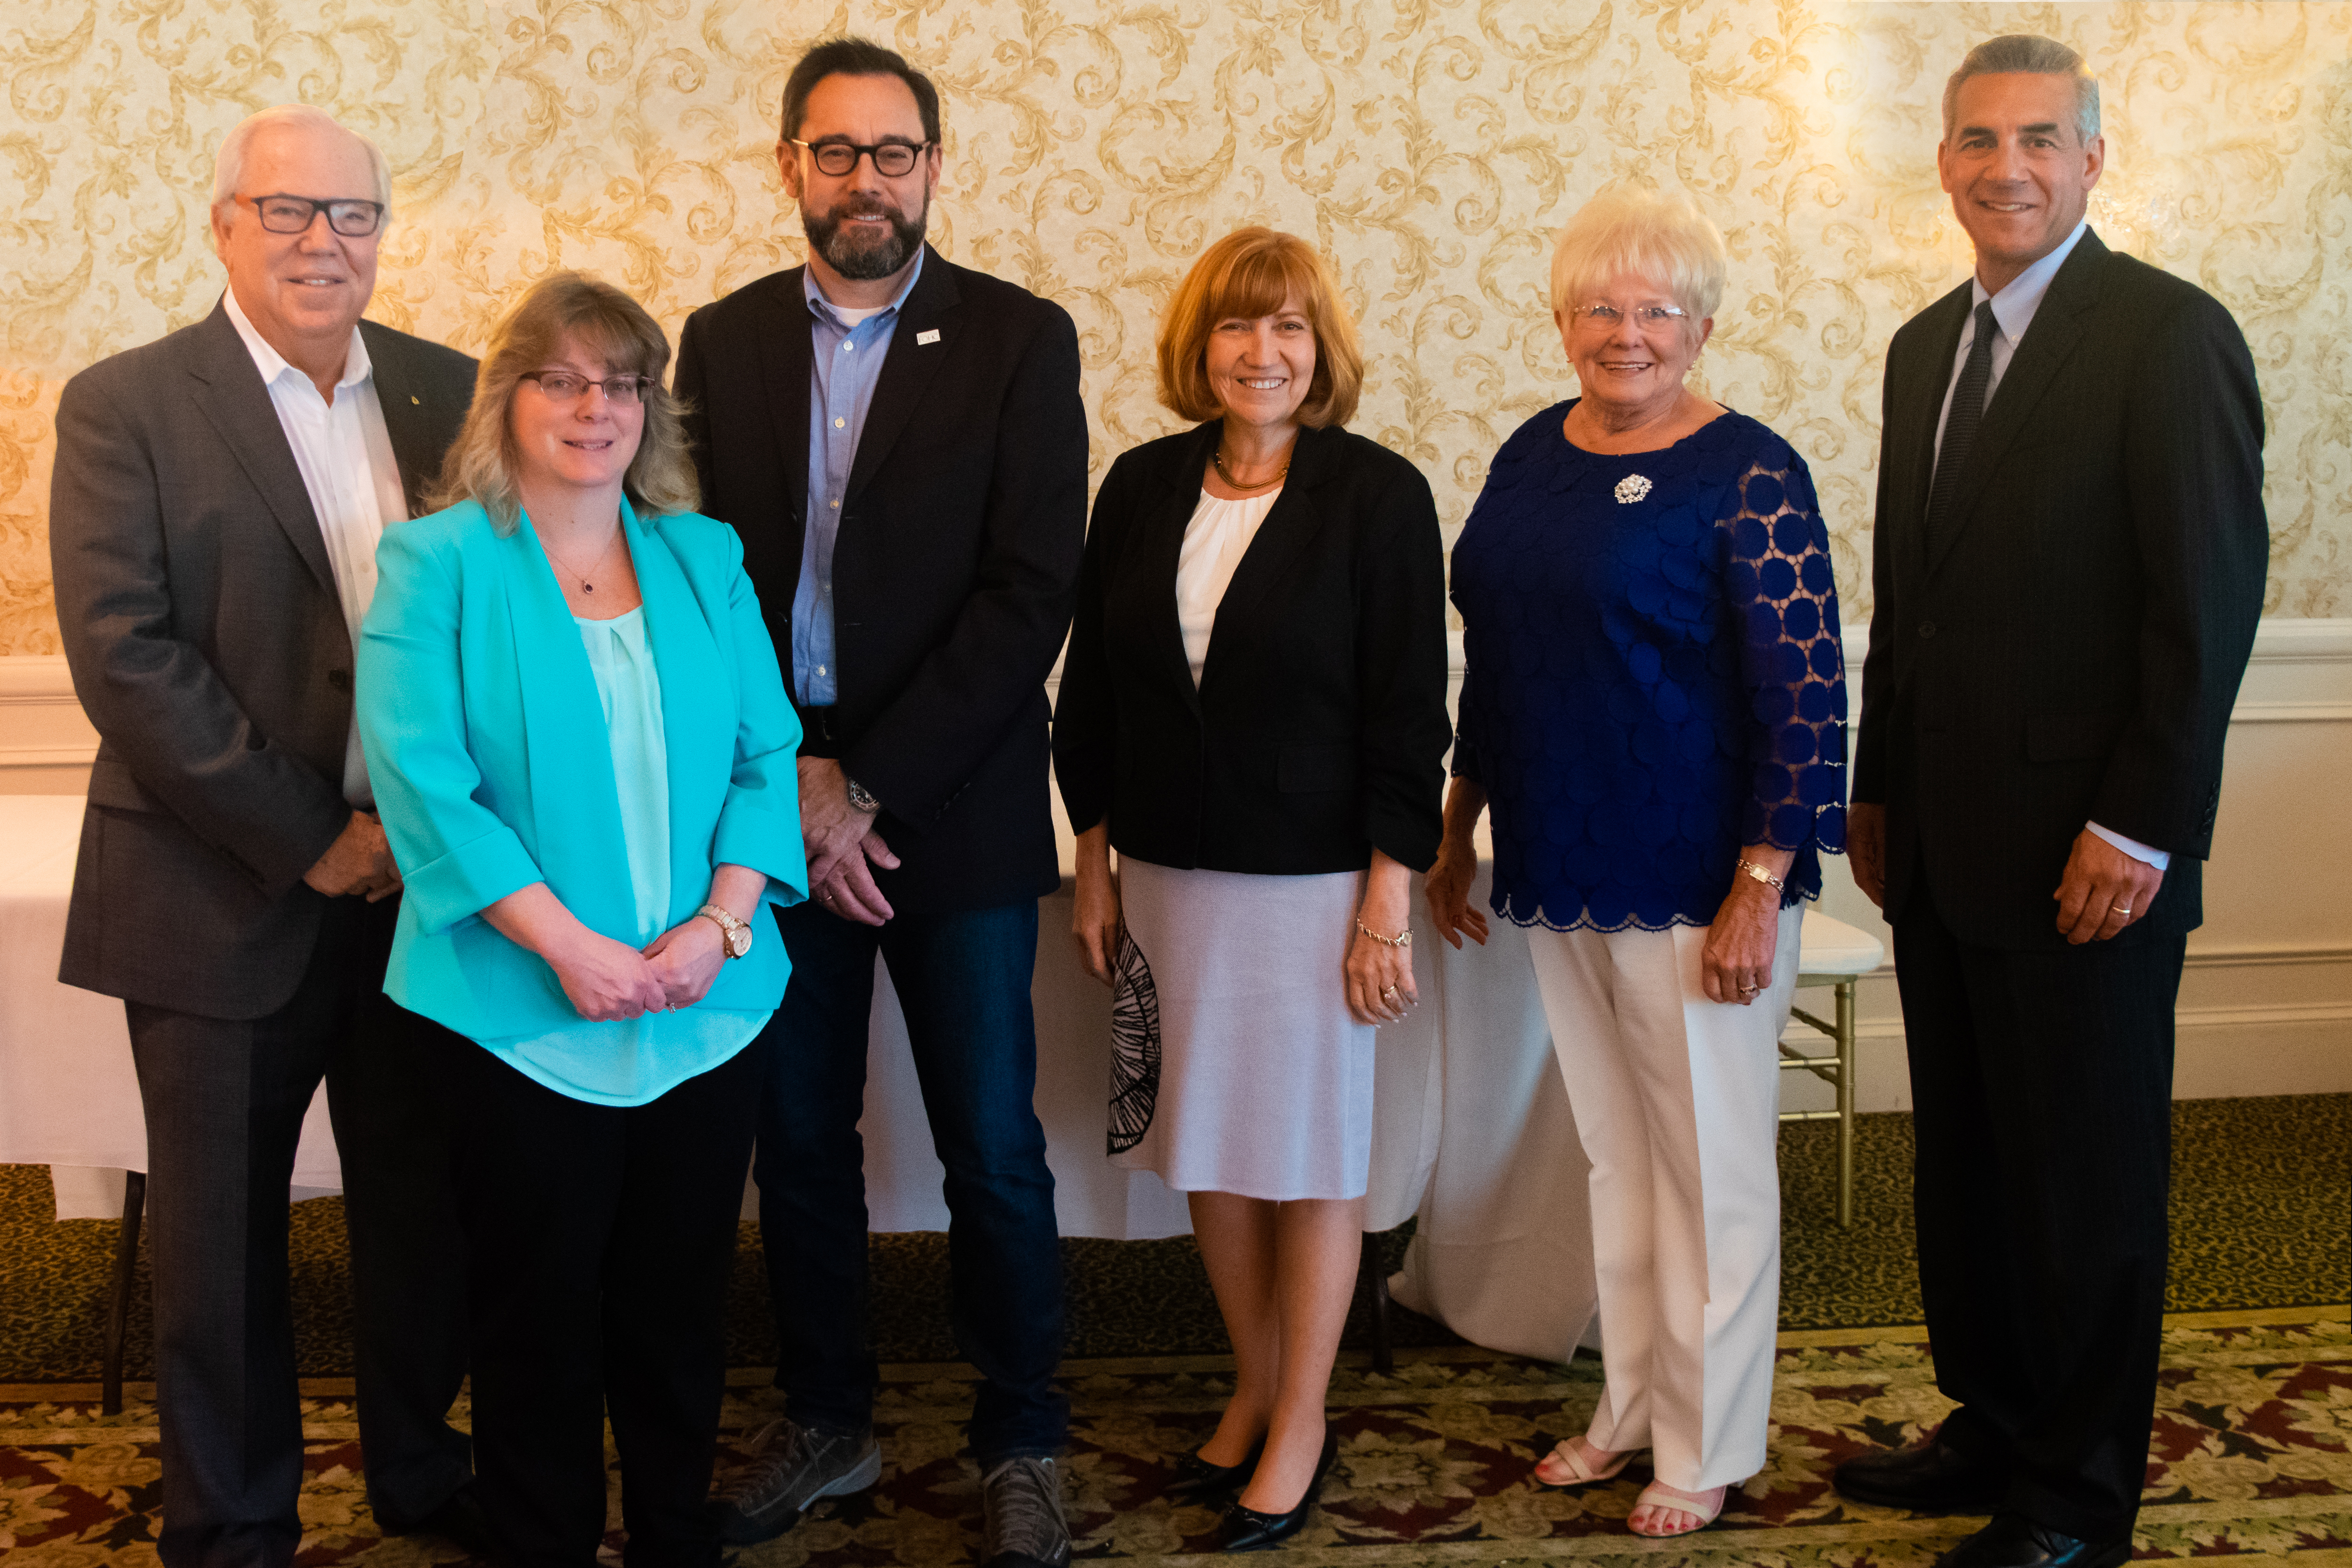 Photo staff, keynote speaker and honorees at Volunteer Appreciation event